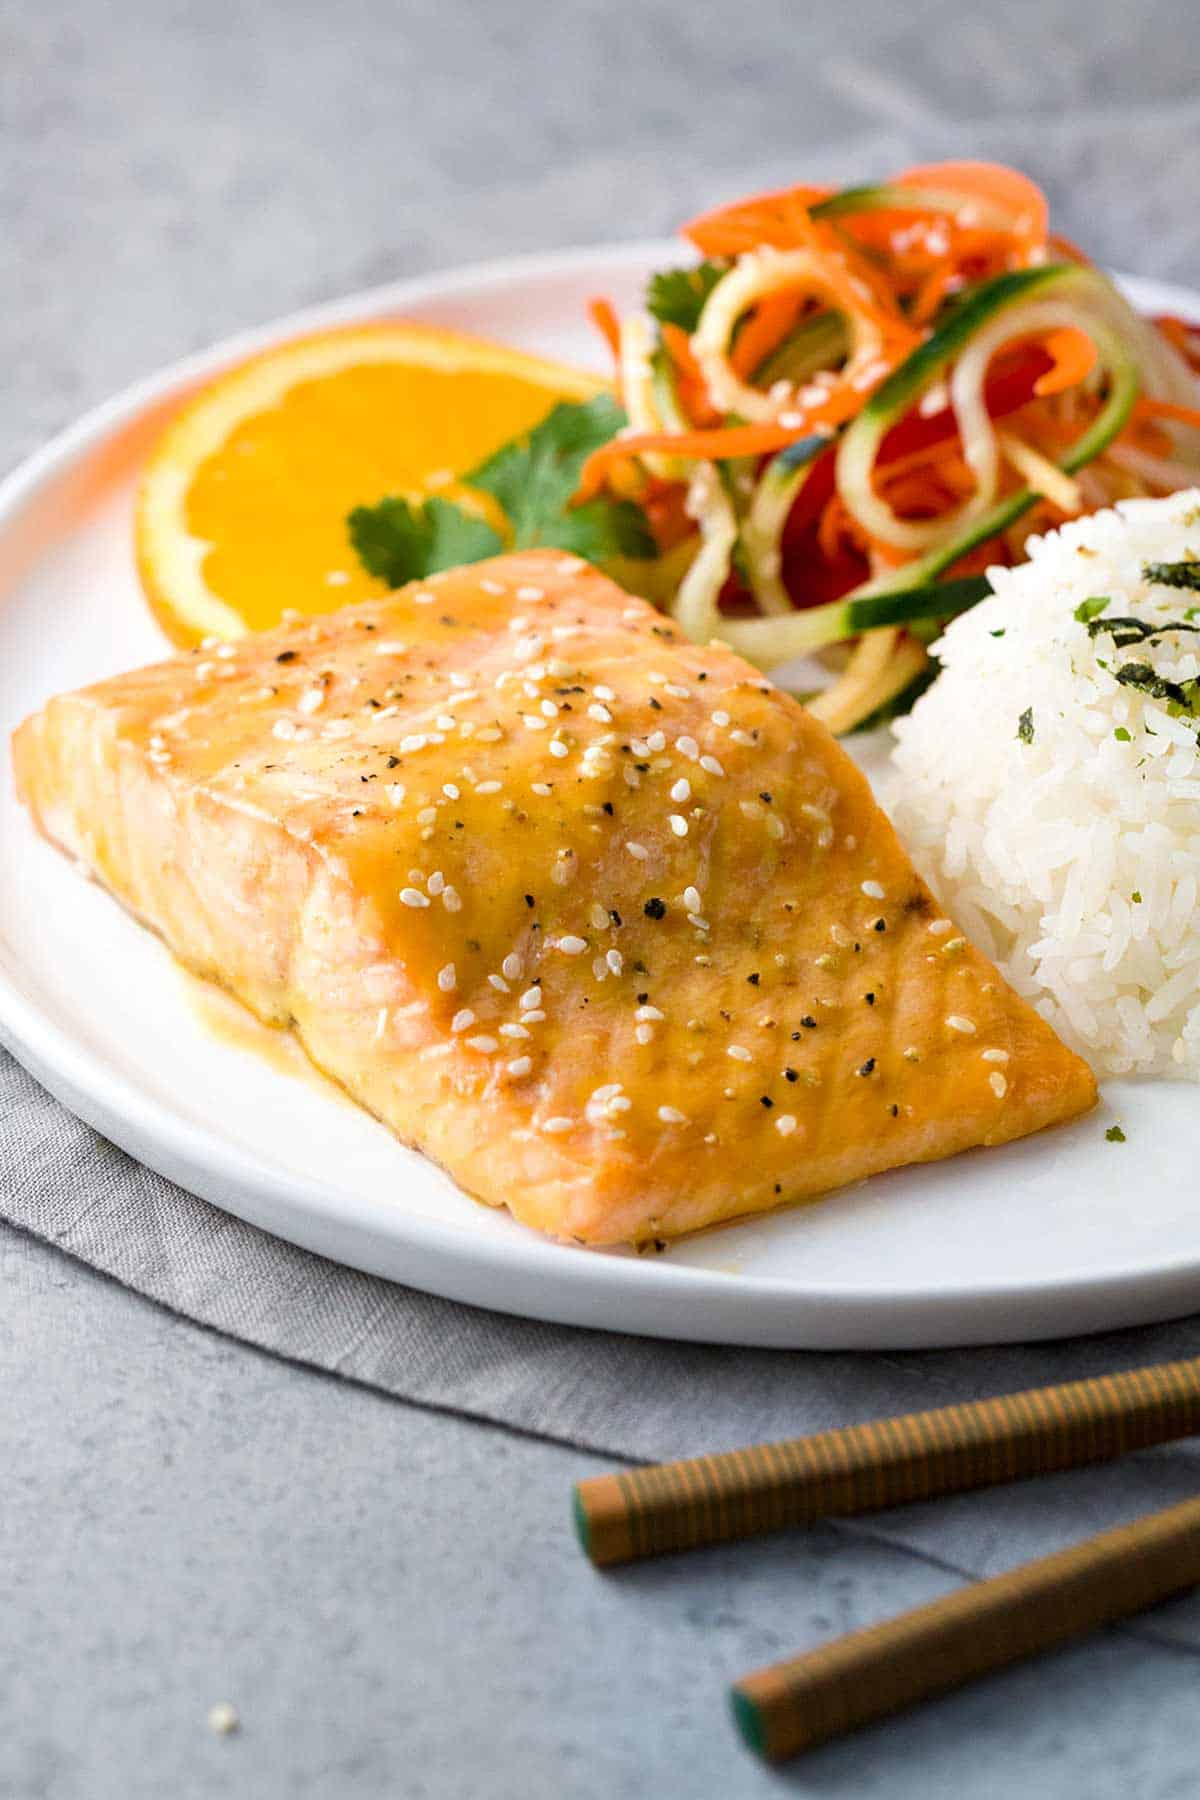 Pan Roasted Citrus-Soy Glazed Salmon - A quick and flavorful Asian-inspired recipe combining healthy protein and omega-3 fatty acids. Served with a crunchy and refreshing cucumber and vegetable salad. | jessicagavin.com